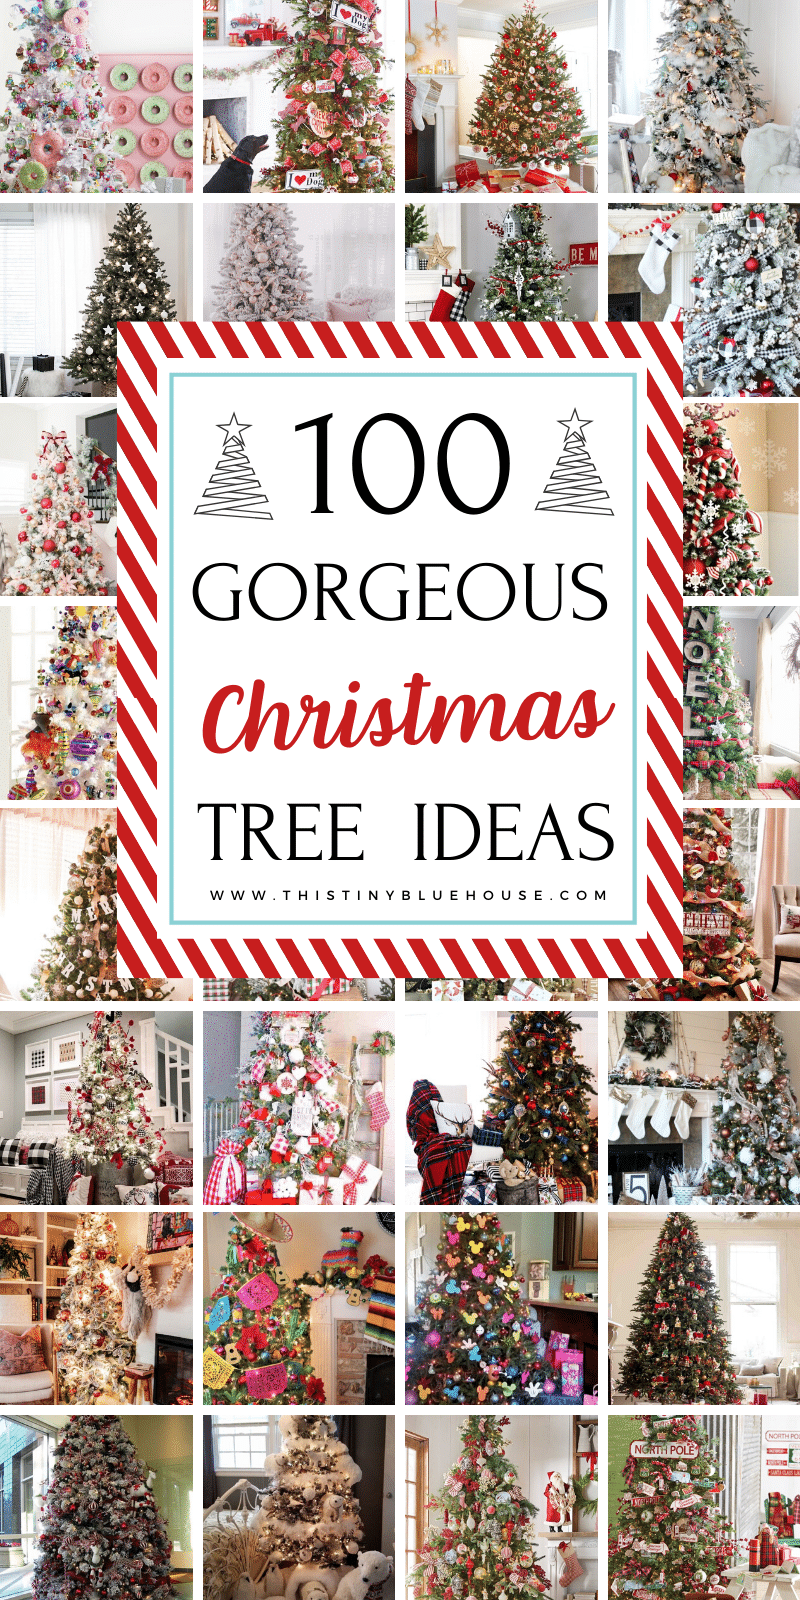 Here are over 100 best gorgeous festive Christmas tree decor ideas that you can use as inspiration for decorating your holiday tree. From traditional to minimalist there is a design style for everyone! #christmastree #christmastreeideas #christmastreedecorations #christmastreethemes #christmastreecolorschemes